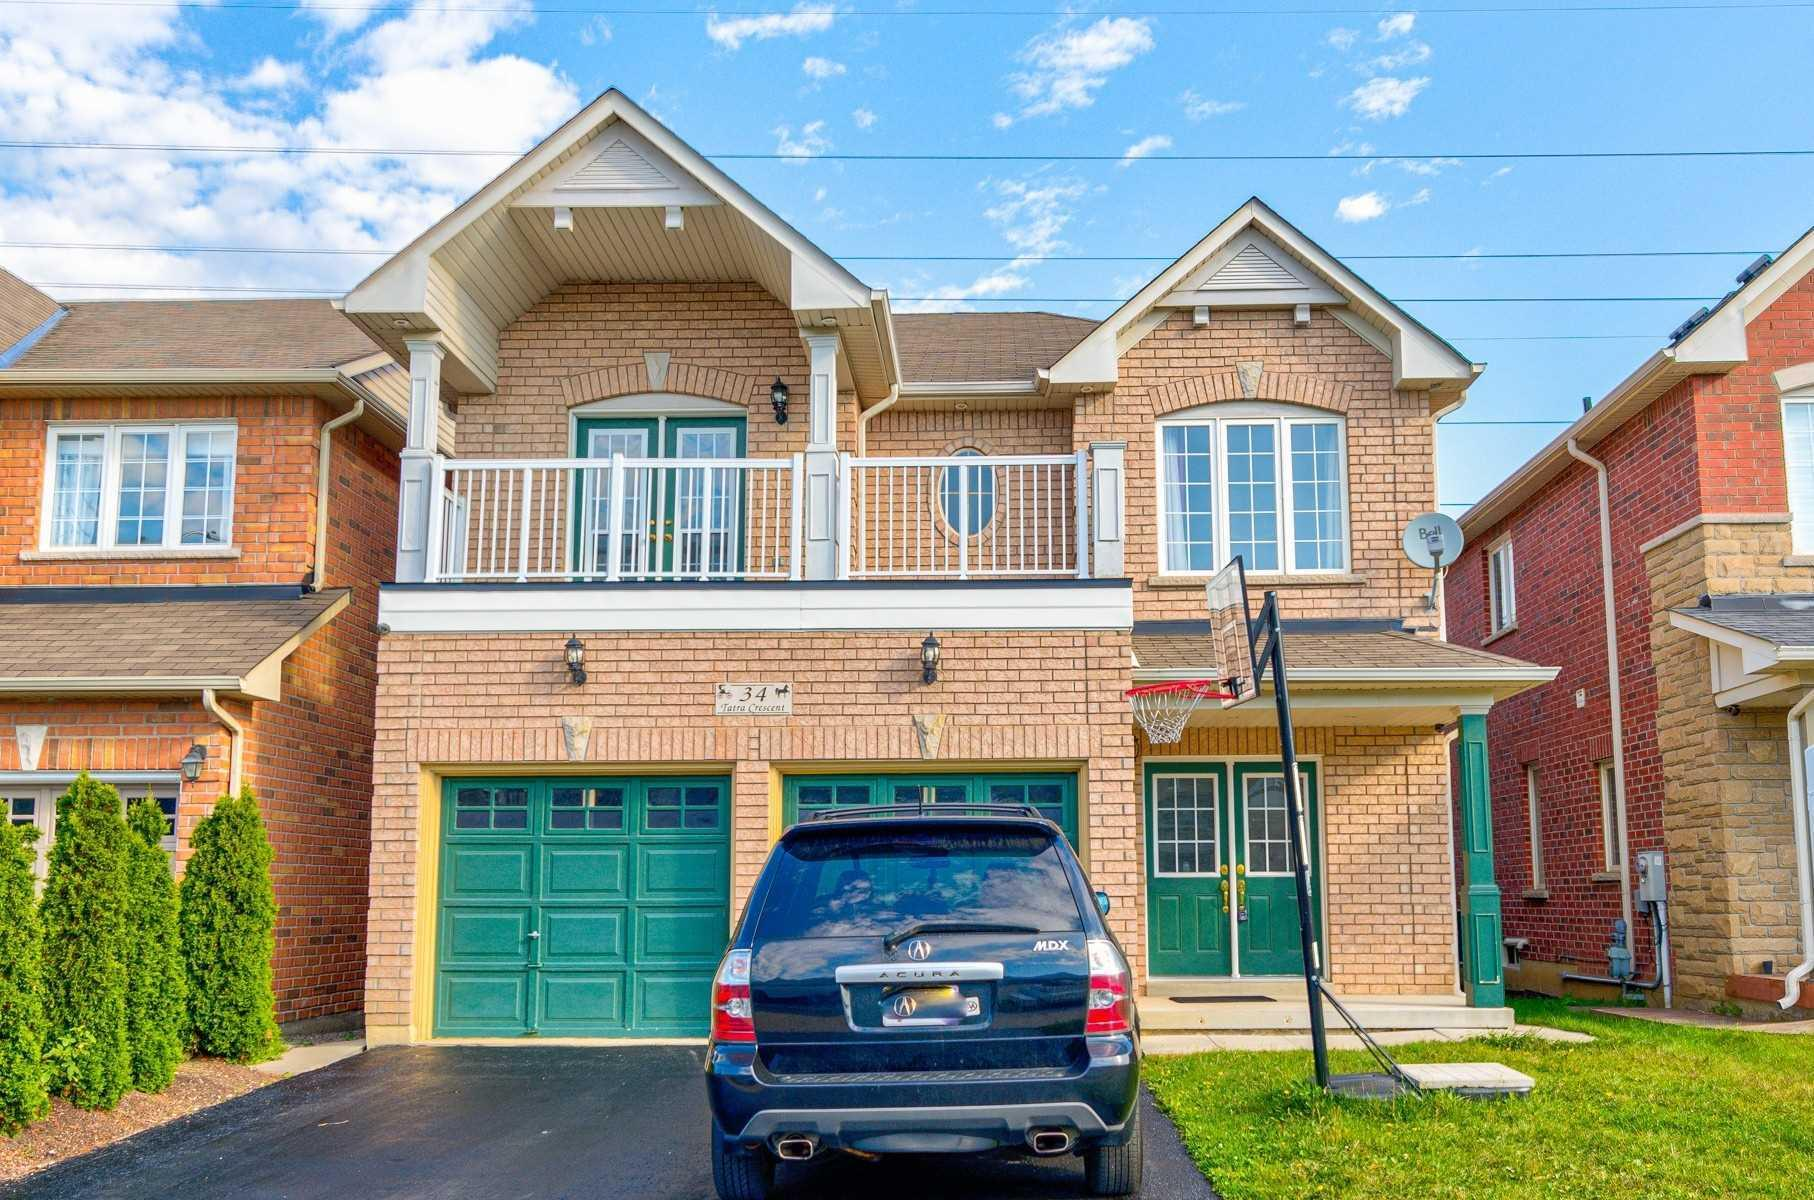 Awesome Houses For Rent In Brampton Search Mls Zoocasa Best Image Libraries Barepthycampuscom